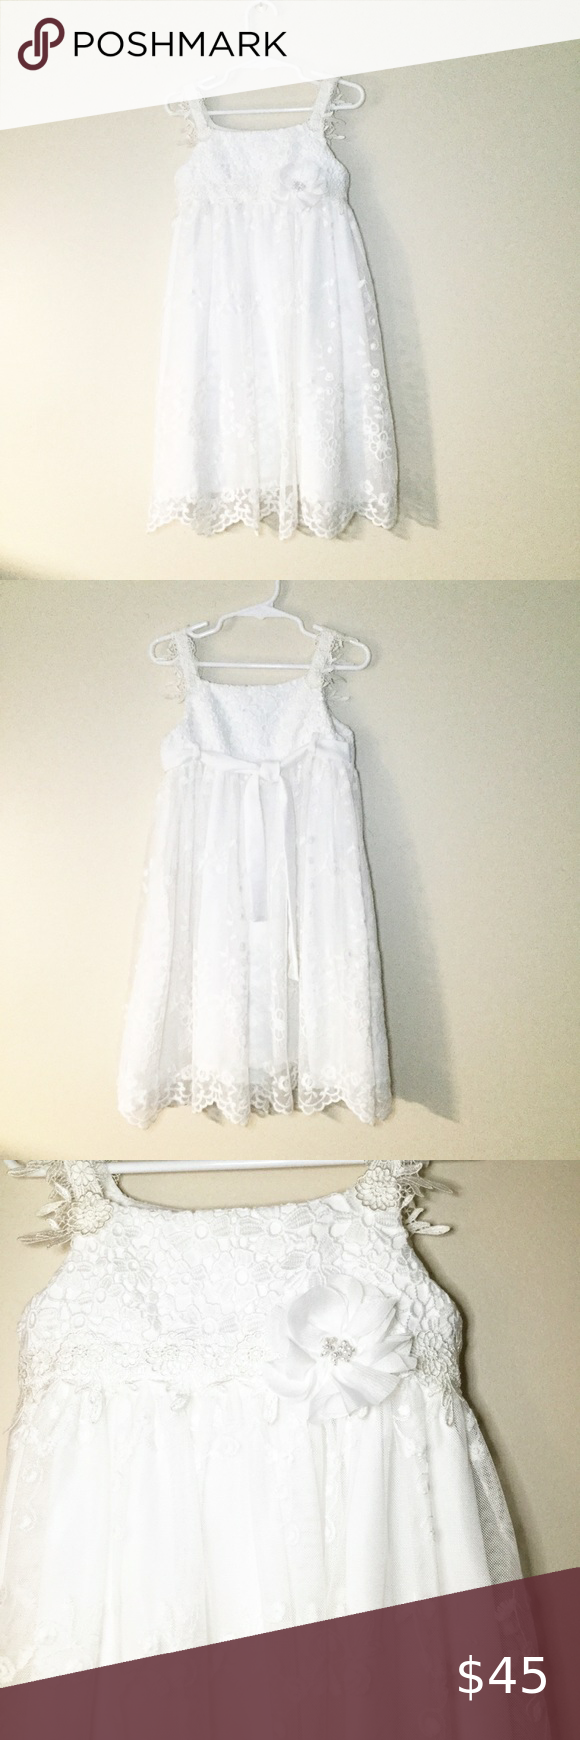 Bonnie Jean White Lace Dress With Lacy Straps 4t Absolutely Gorgeous Can Be Worn At Any Formal Occasion Or As A Flower Lace White Dress Lace Dress White Lace [ 1740 x 580 Pixel ]